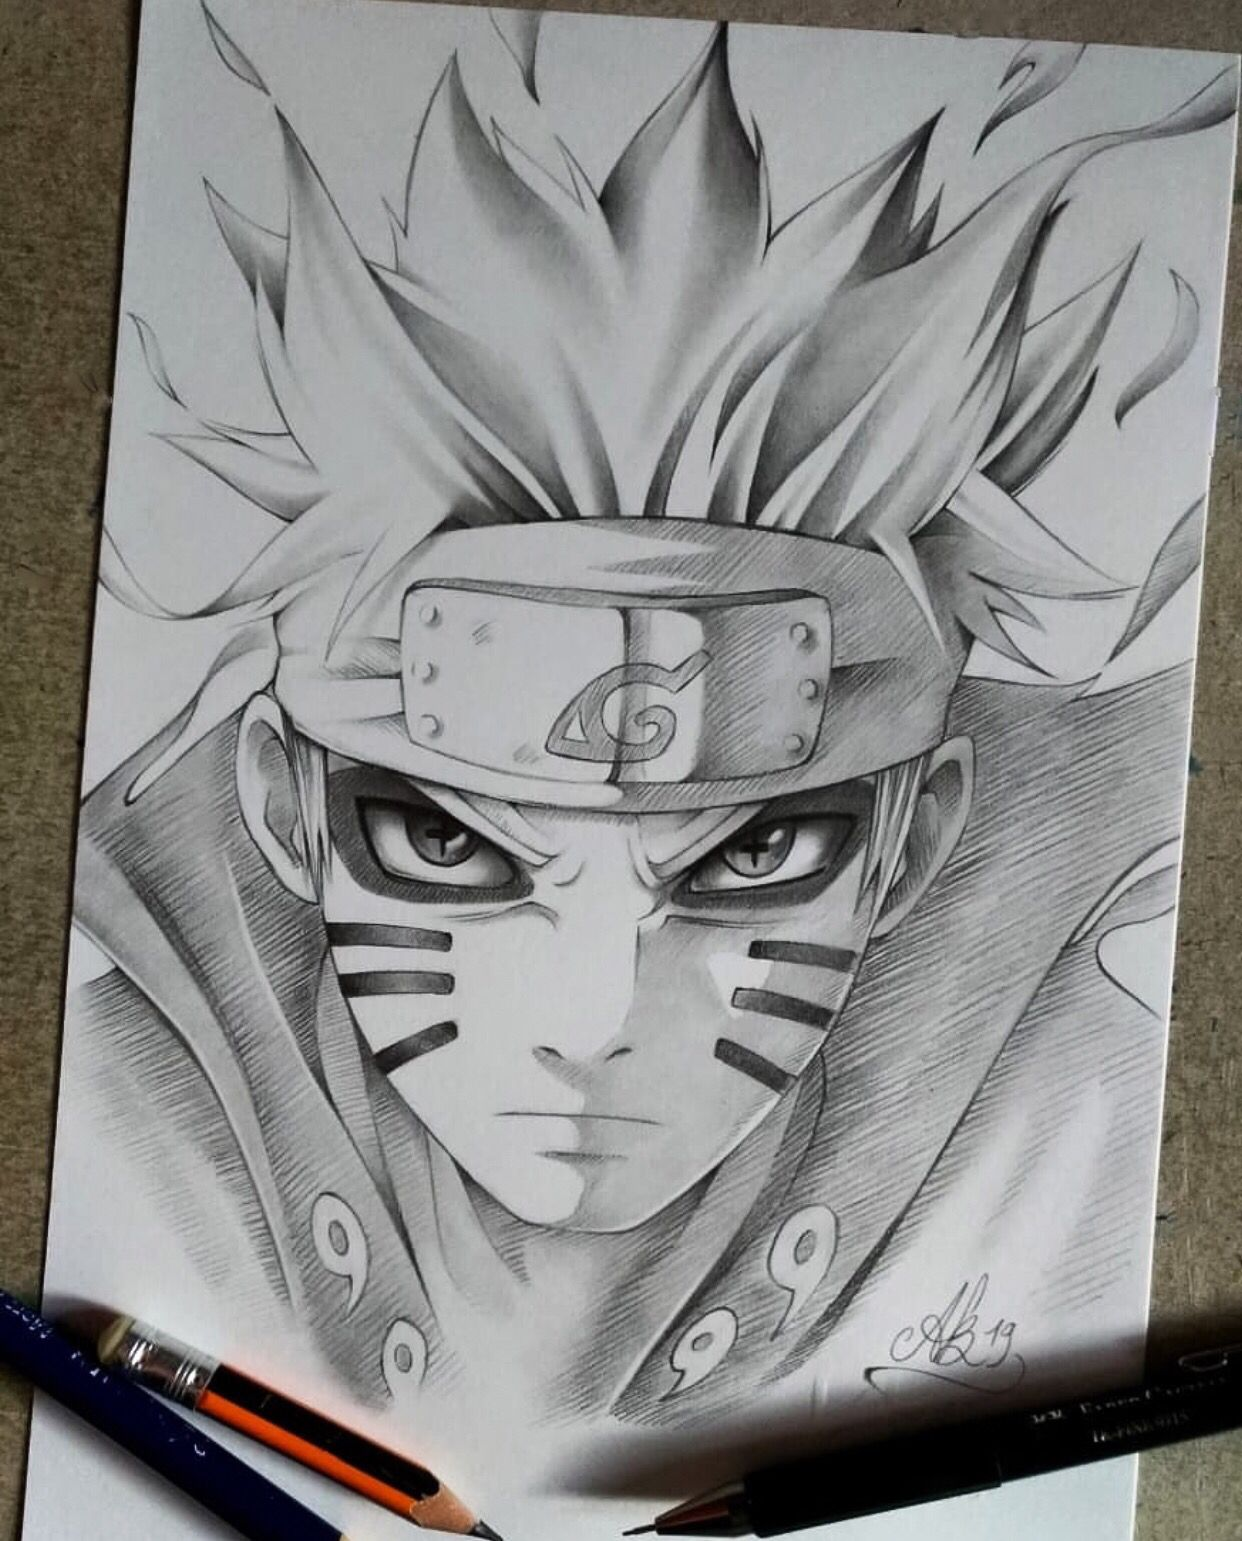 Drawing Anime Characters Mostly From Naruto Is My Passion What About Yours In 2020 Naruto Sketch Anime Character Drawing Naruto Drawings